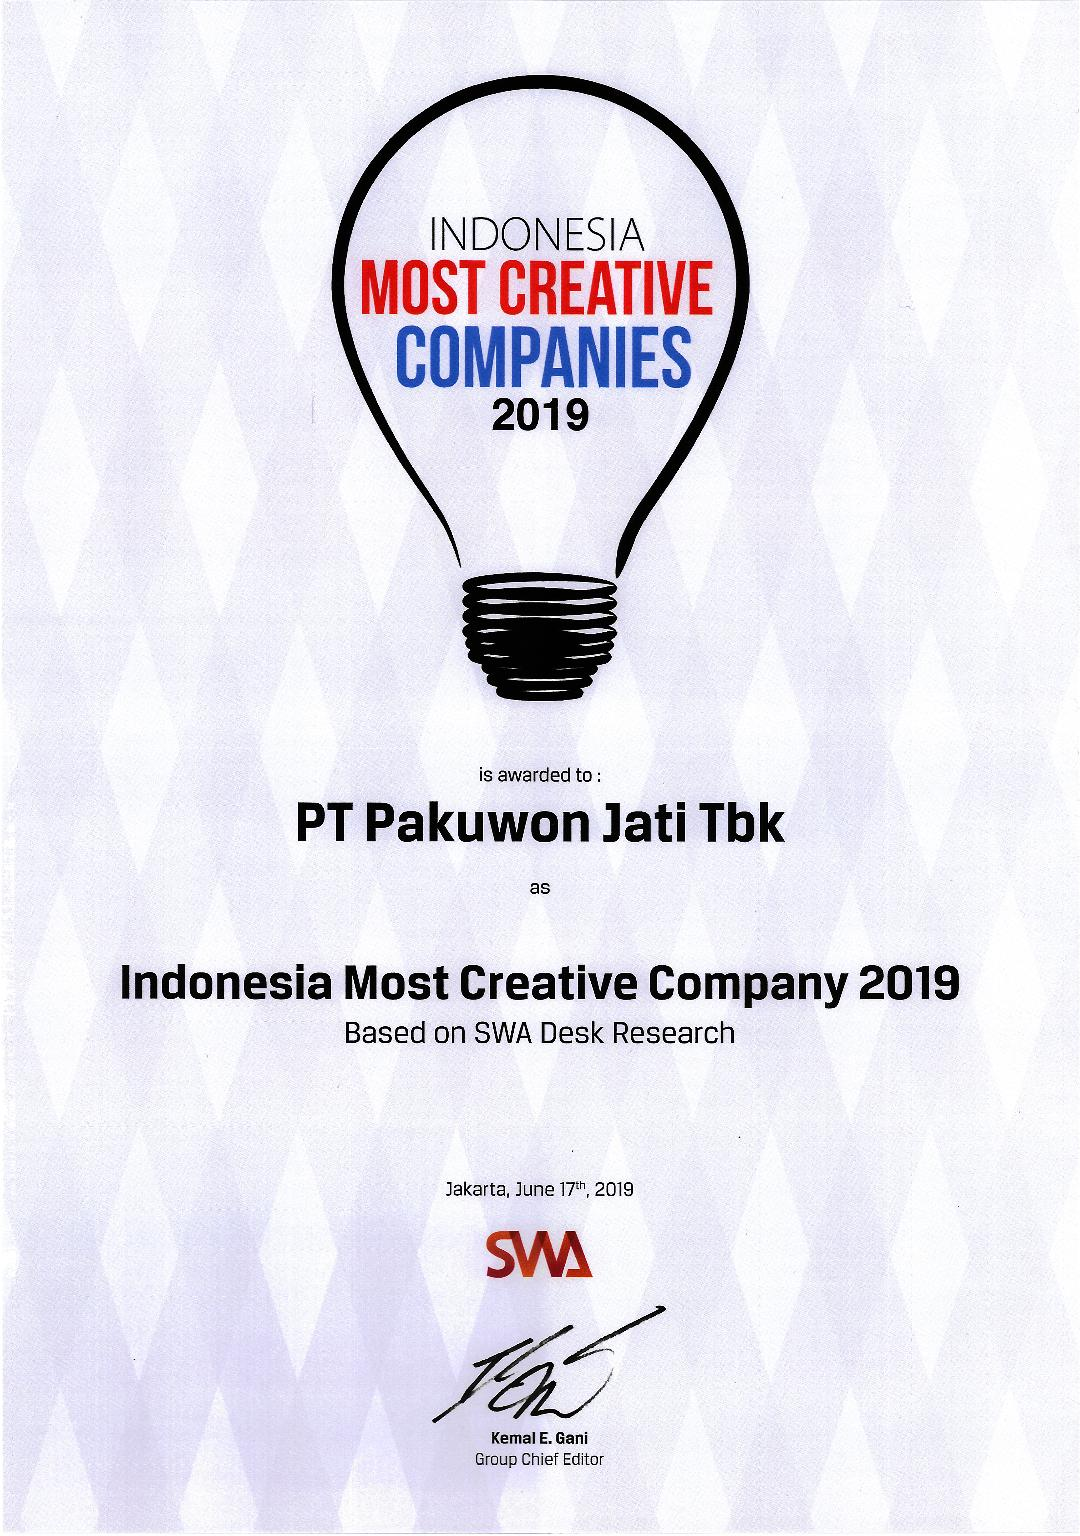 /public/files/image-companny/award-slider/IndonesiaMostCreativeCompany2019_2.jpg